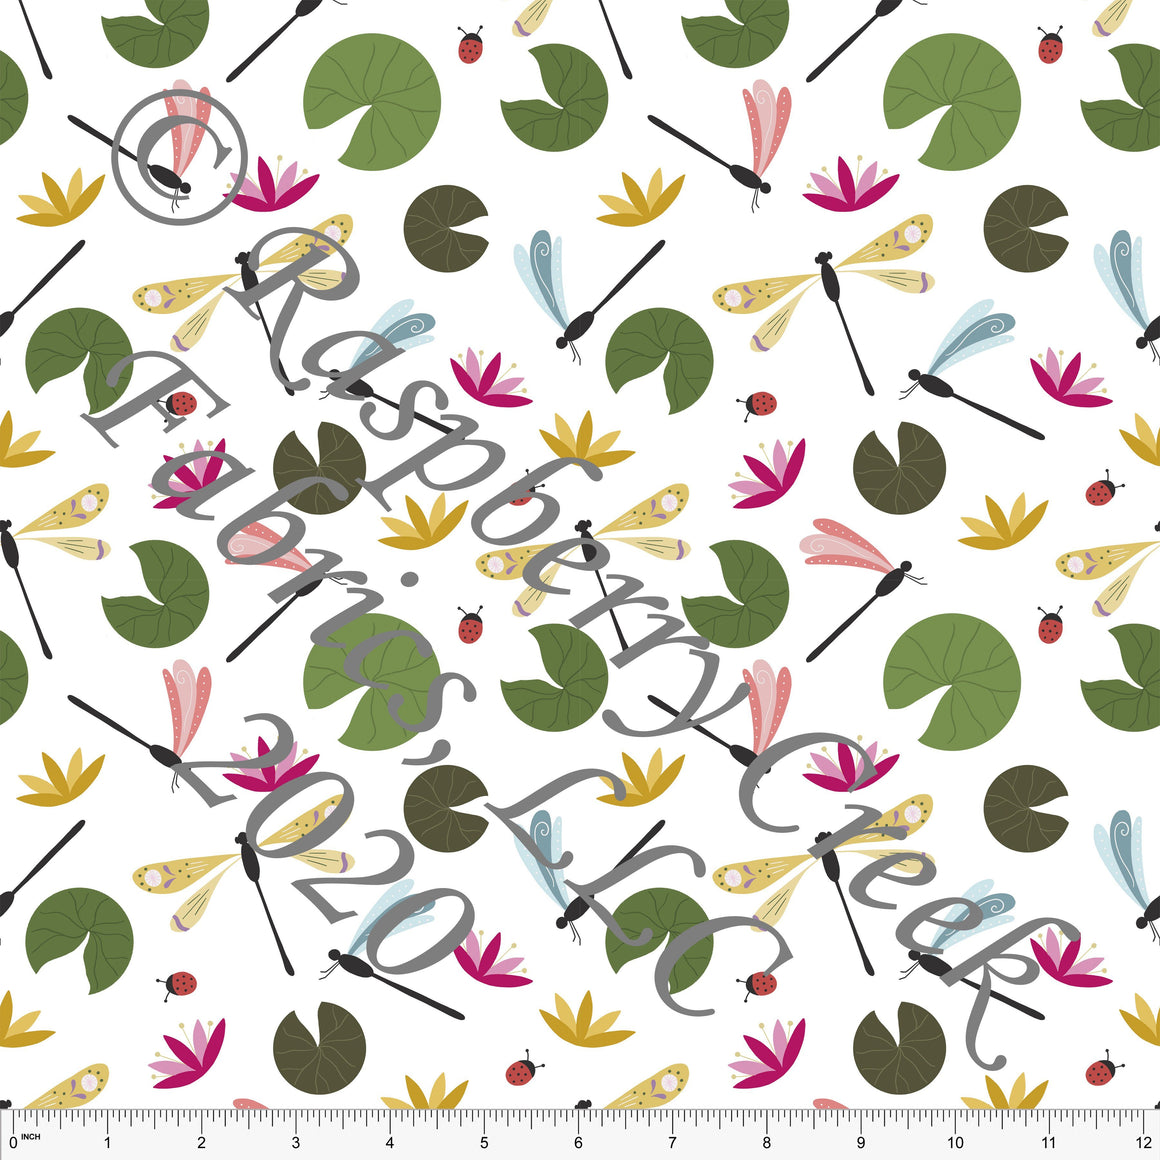 Fuchsia Green Olive Mustard and Pink Dragonflies, Spring Bugs By Stephani MacLeod for Club Fabrics - Raspberry Creek Fabrics